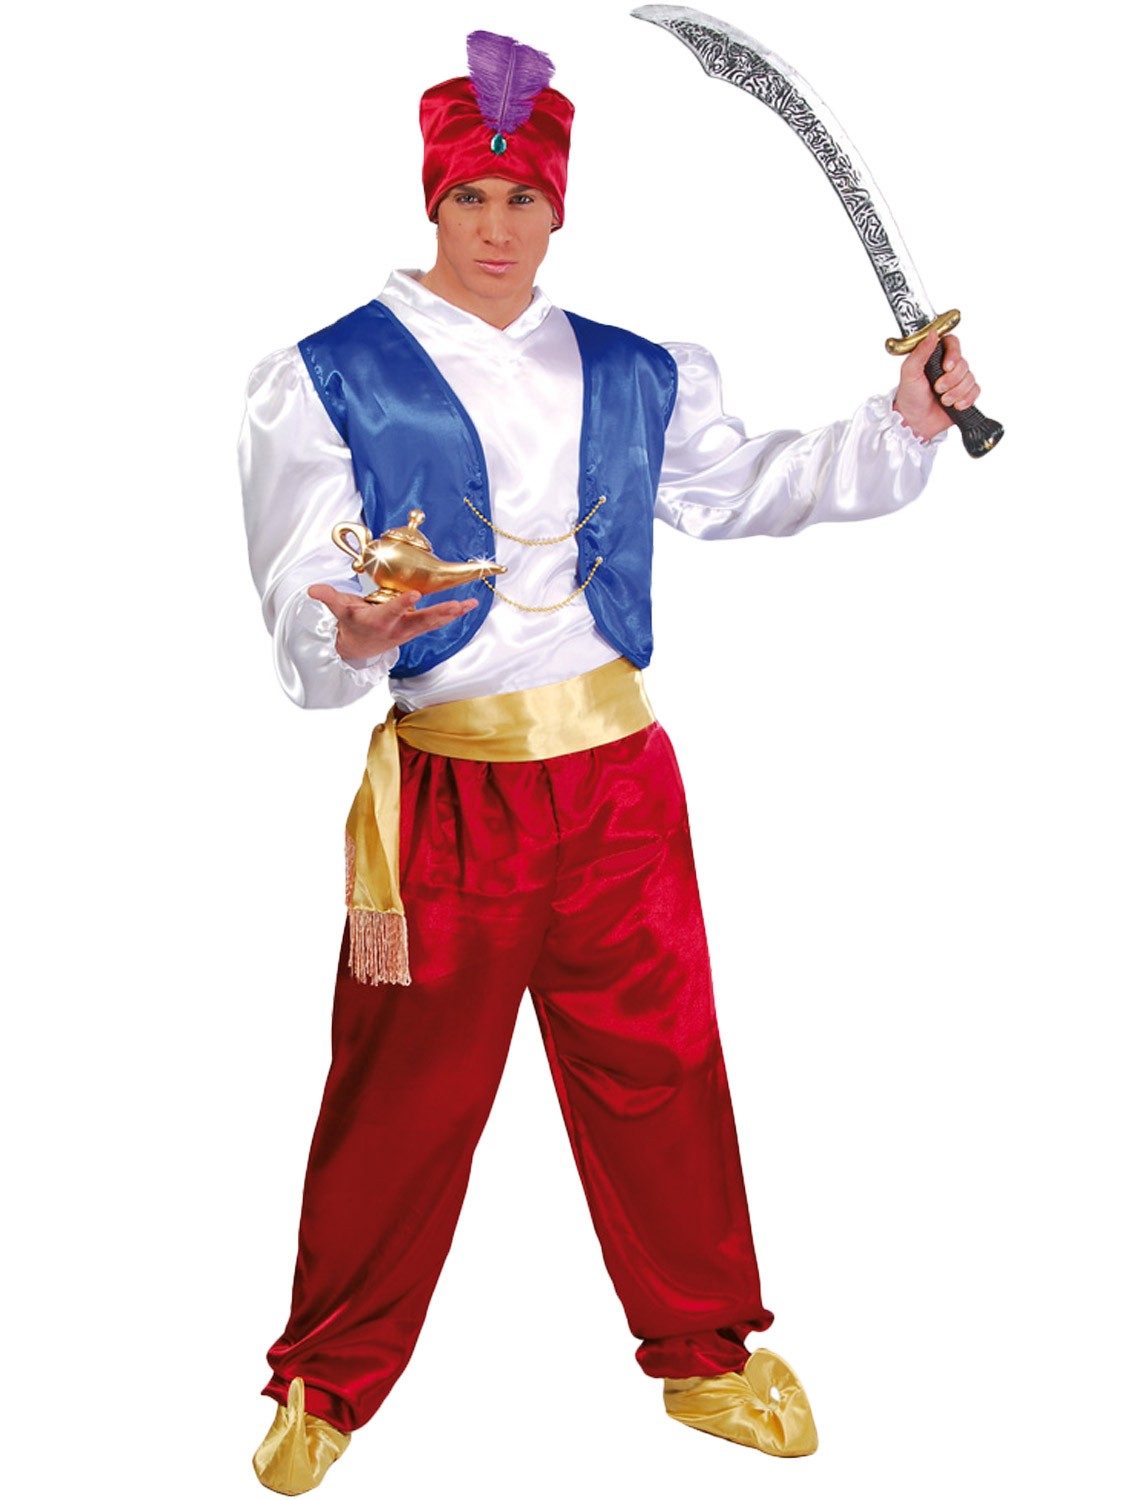 Mens genie costume adults aladdin fancy dress arabian prince transform yourself into a genie with this mens aladdin themed costume perfect for the schools book week day solutioingenieria Images